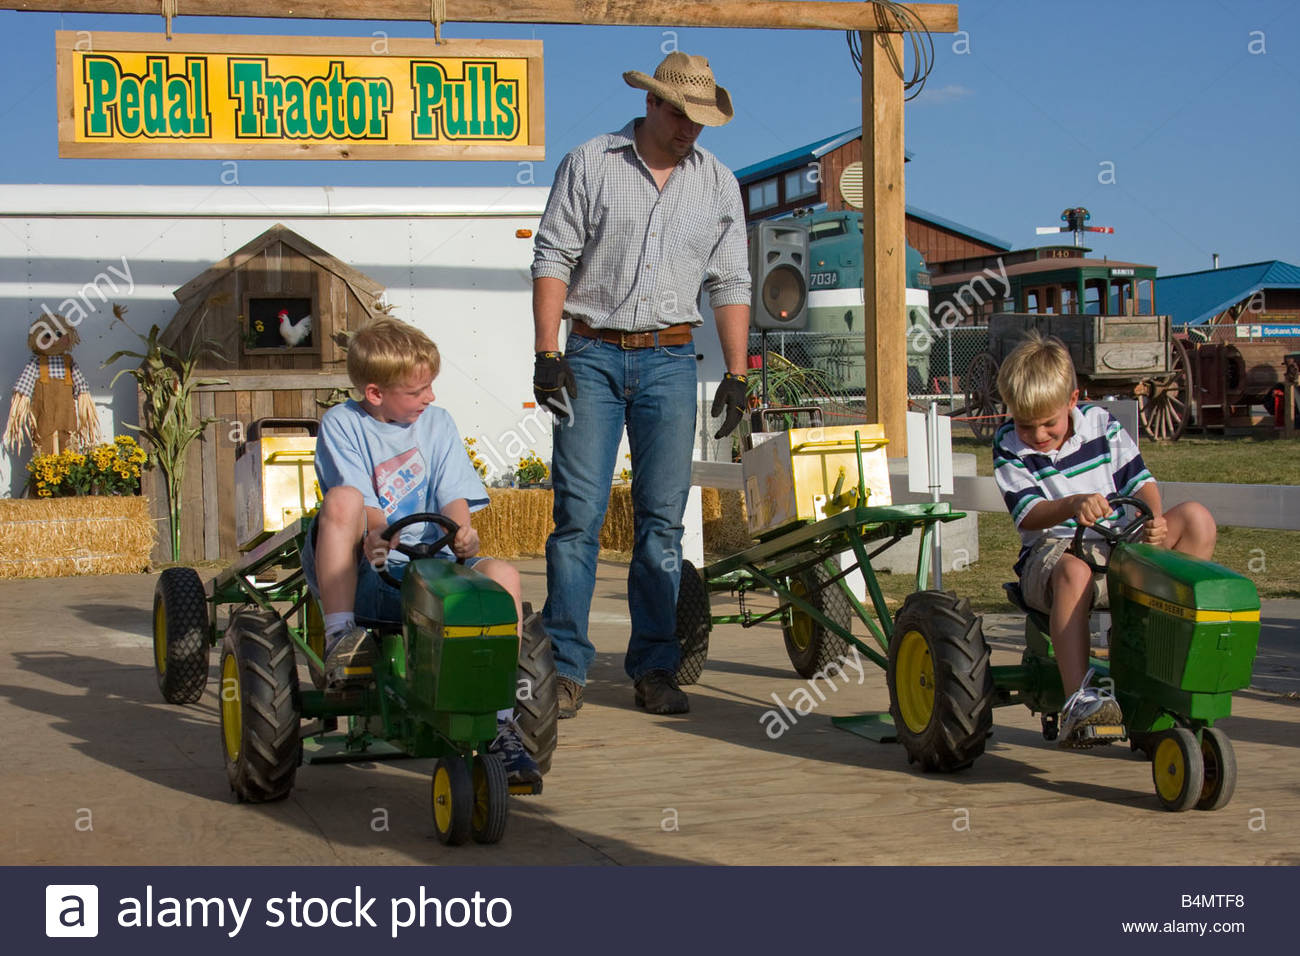 Two boys compete in a childrens version of tractor pulls as a man supervises at the Spokane Interstate Fair. - Stock Image